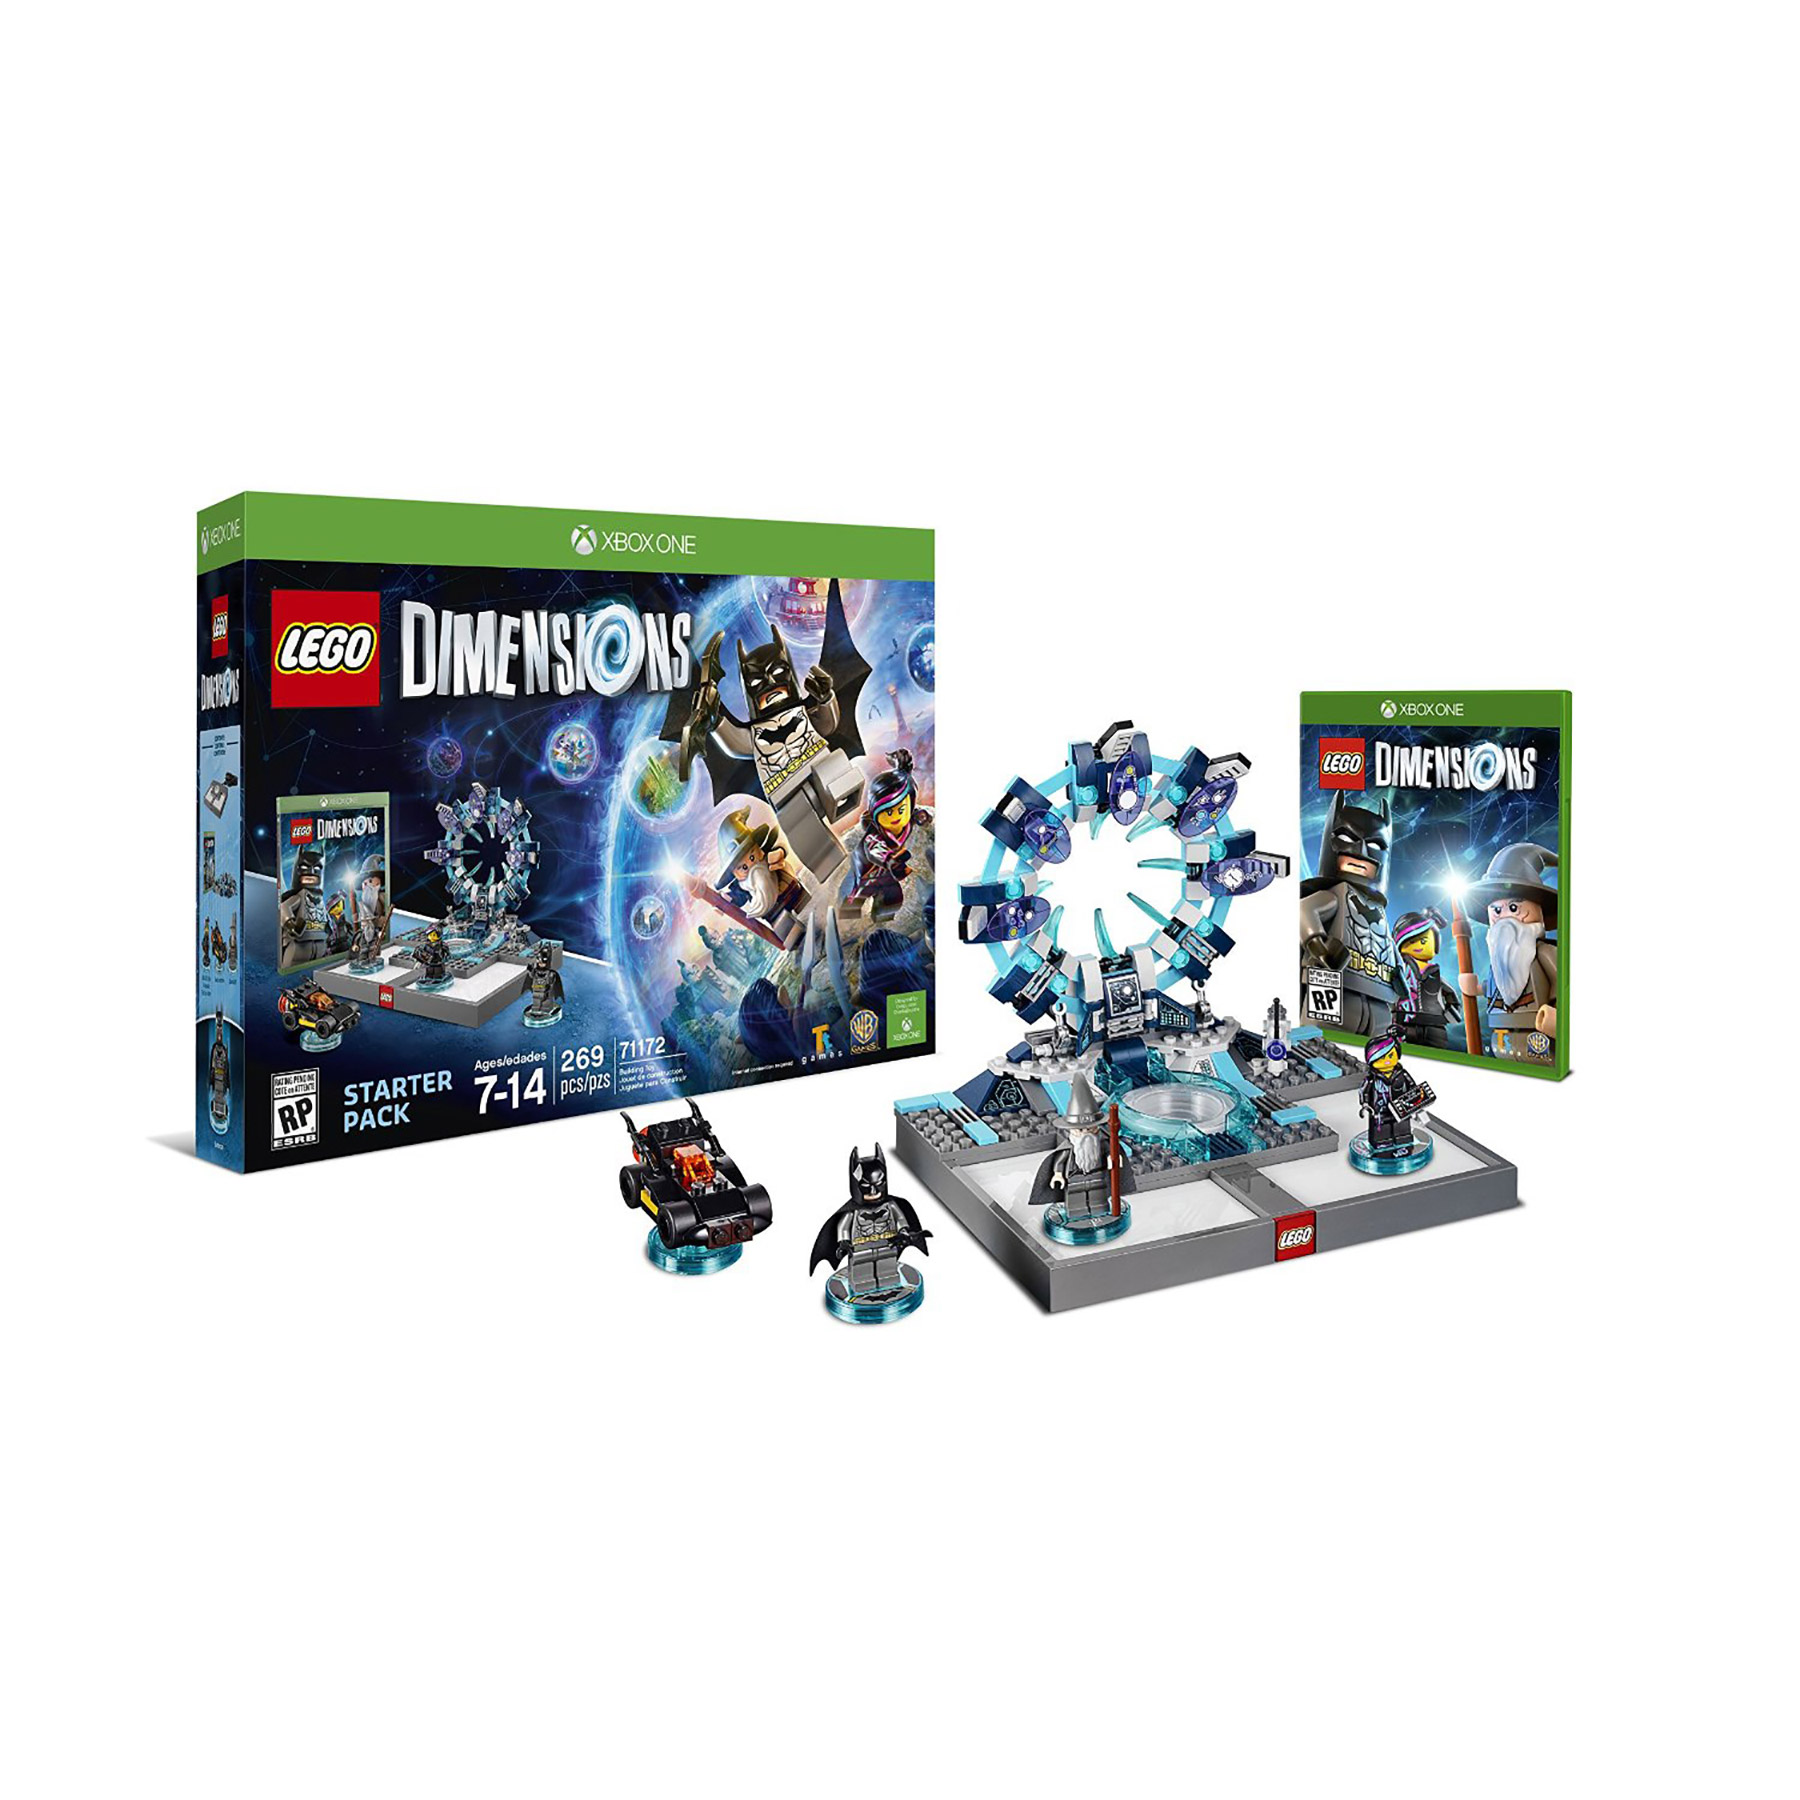 Xbox One Lego Dimensions Starter Pack